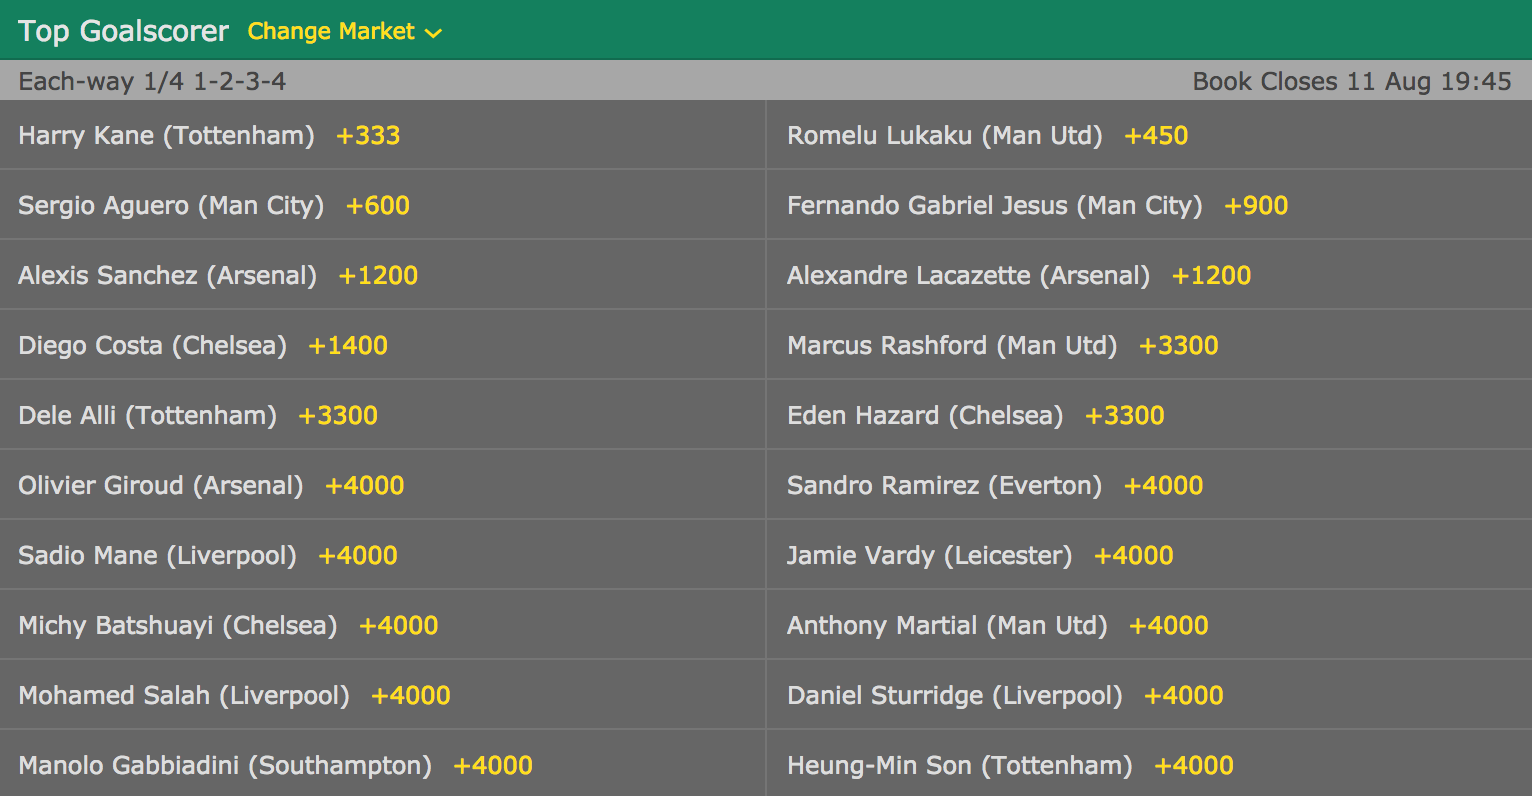 EPL Top Goalscorer Odds at Bet365